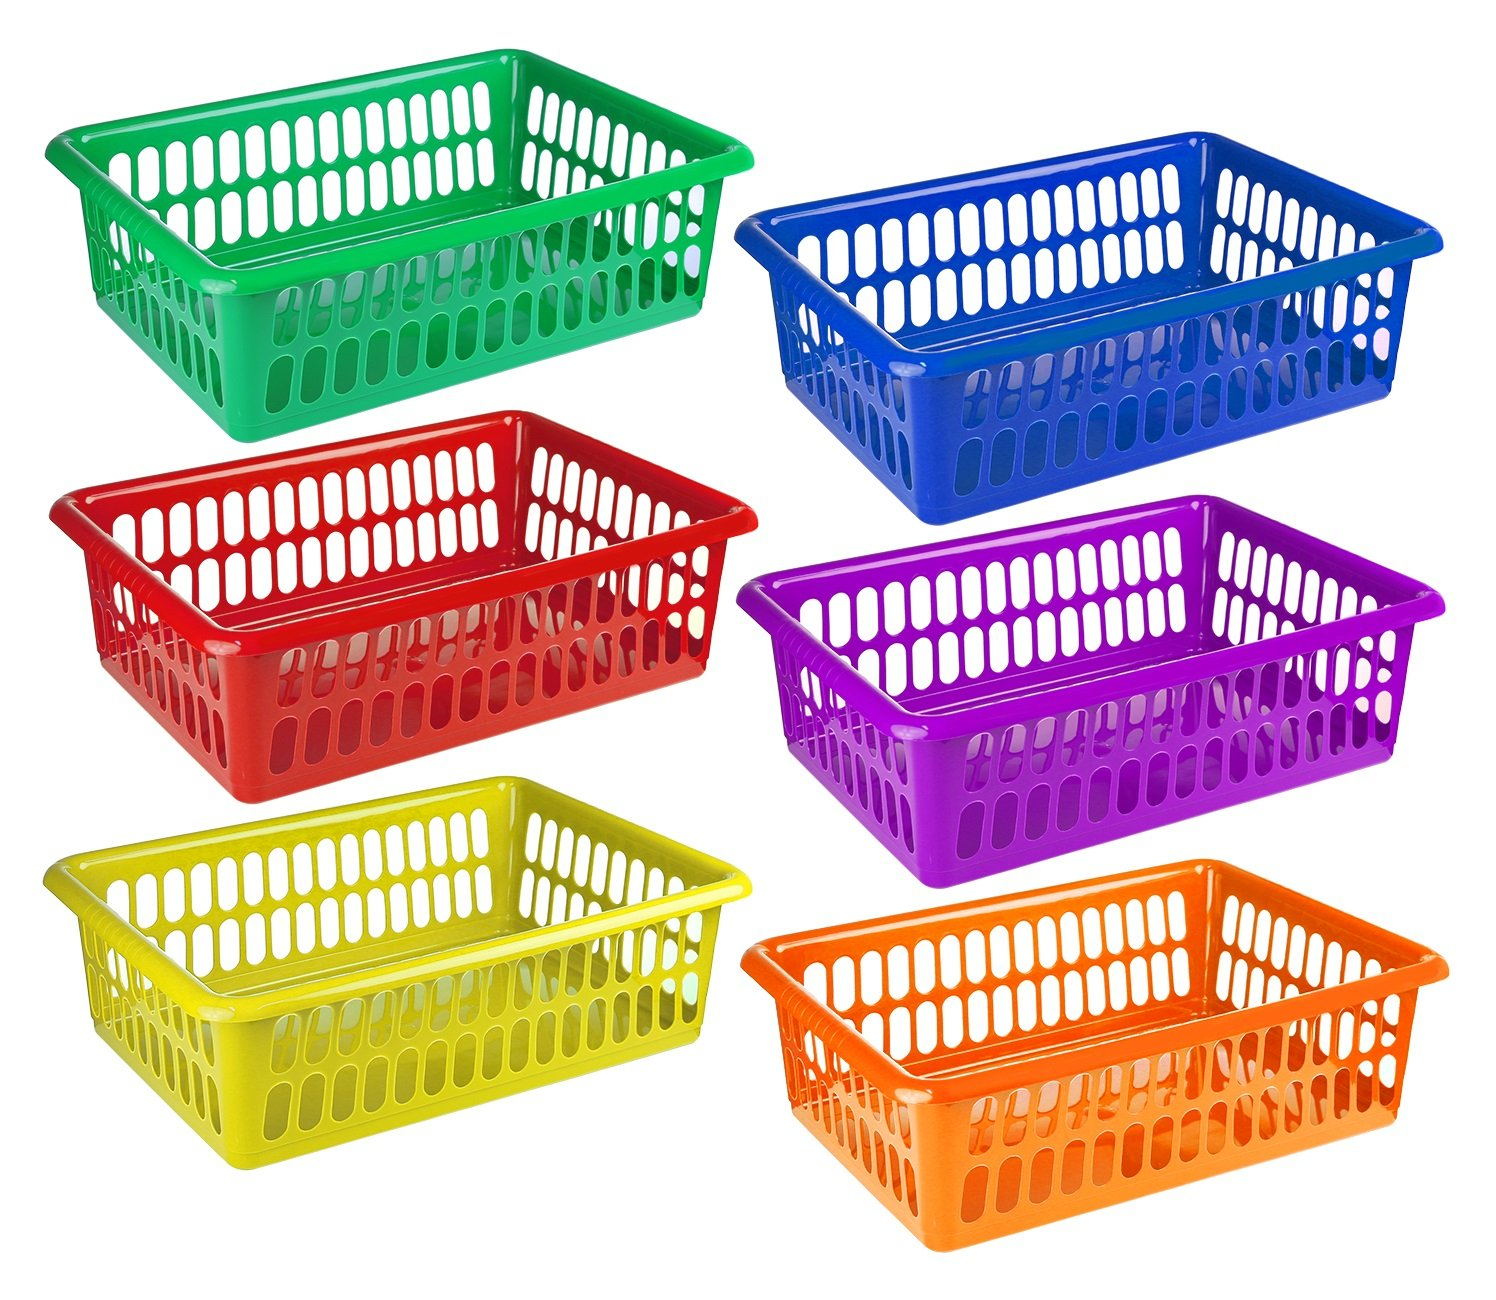 Zilpoo 6 Pack - Plastic Colorful Storage Baskets, Paper, Office Supplies, Toys and Teacher Student Classroom Organization Bins, 15'' x 10'', Assorted Colors